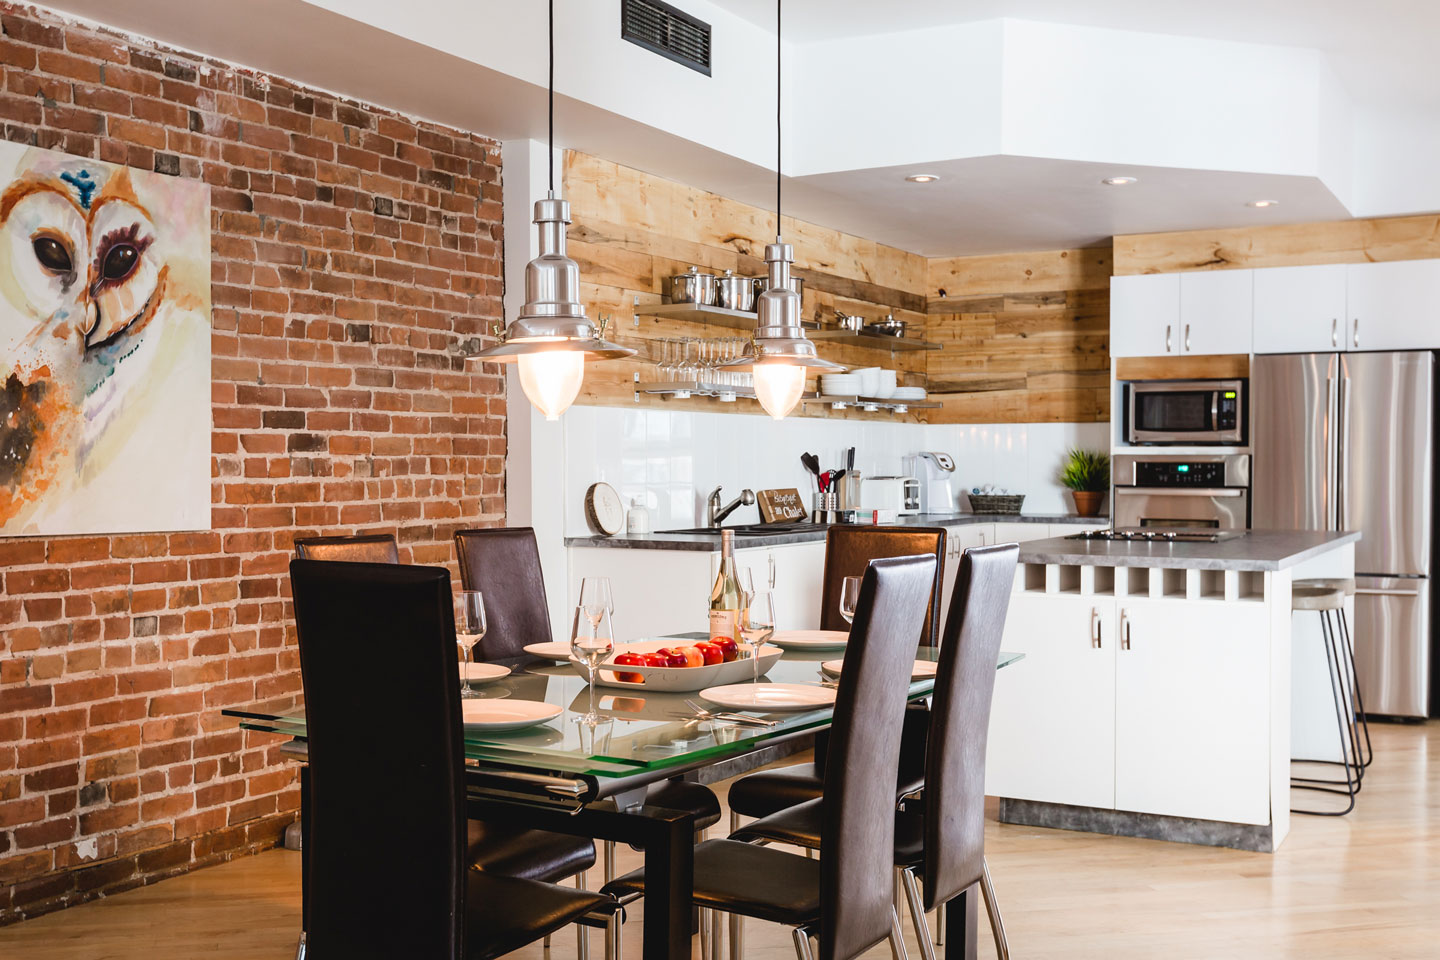 City chalet: dining room